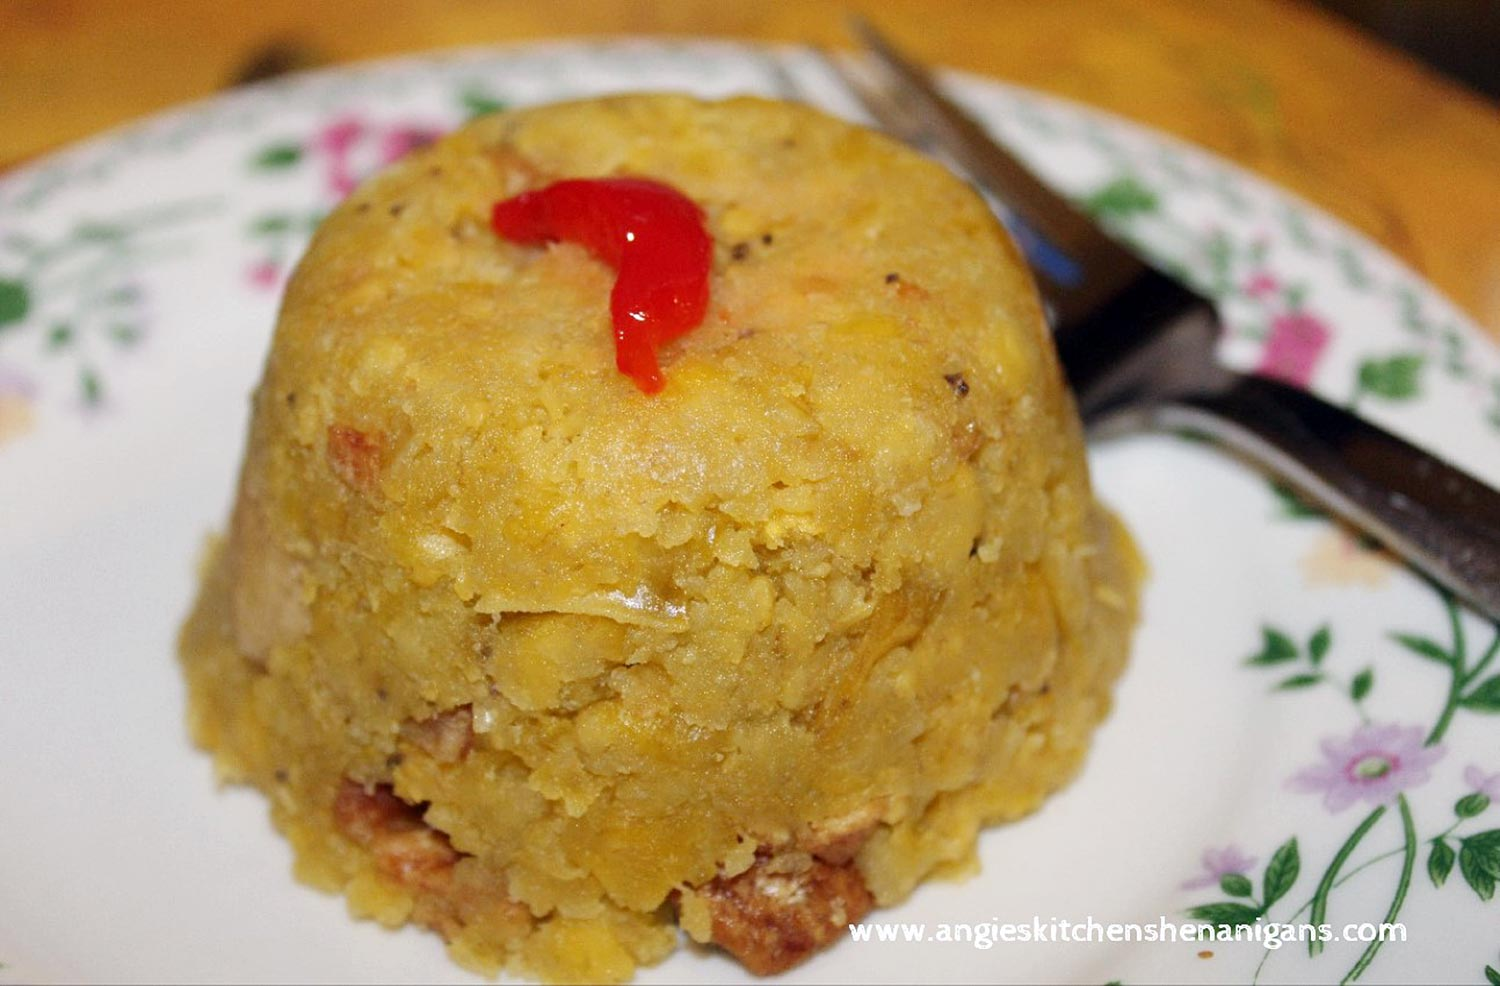 Mofongo recipe how to make puerto rican mashed plantain mofongo puerto rican plantain balls forumfinder Image collections